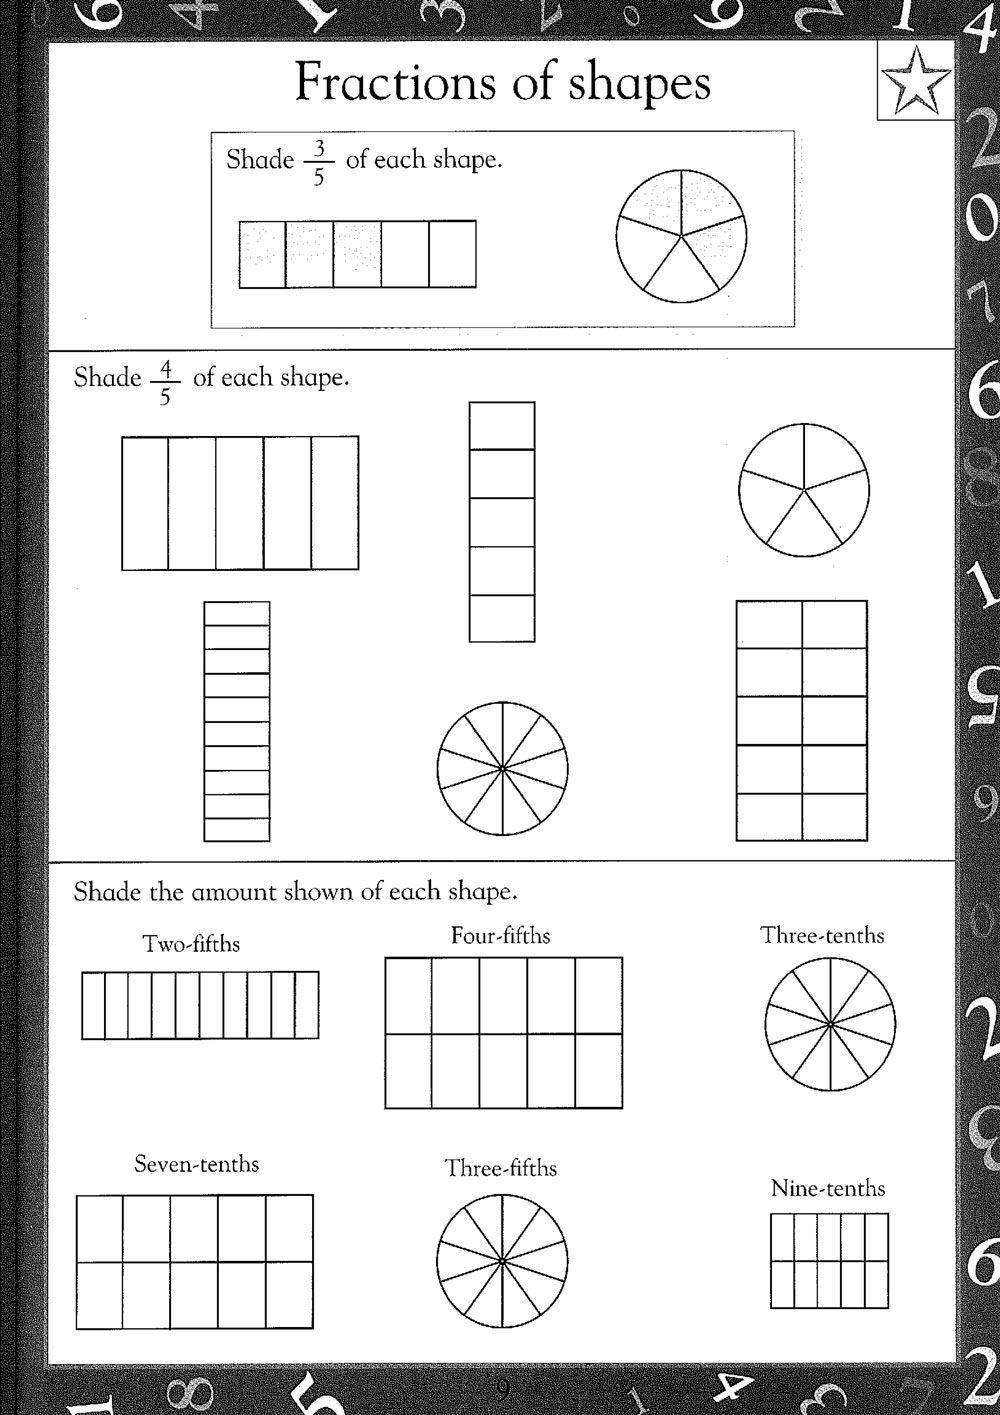 Free Printable Maths Worksheets Maths Worksheets For Kids 661395895257478814 Free Printable Math Worksheets Kids Math Worksheets Maths Worksheets Ks2